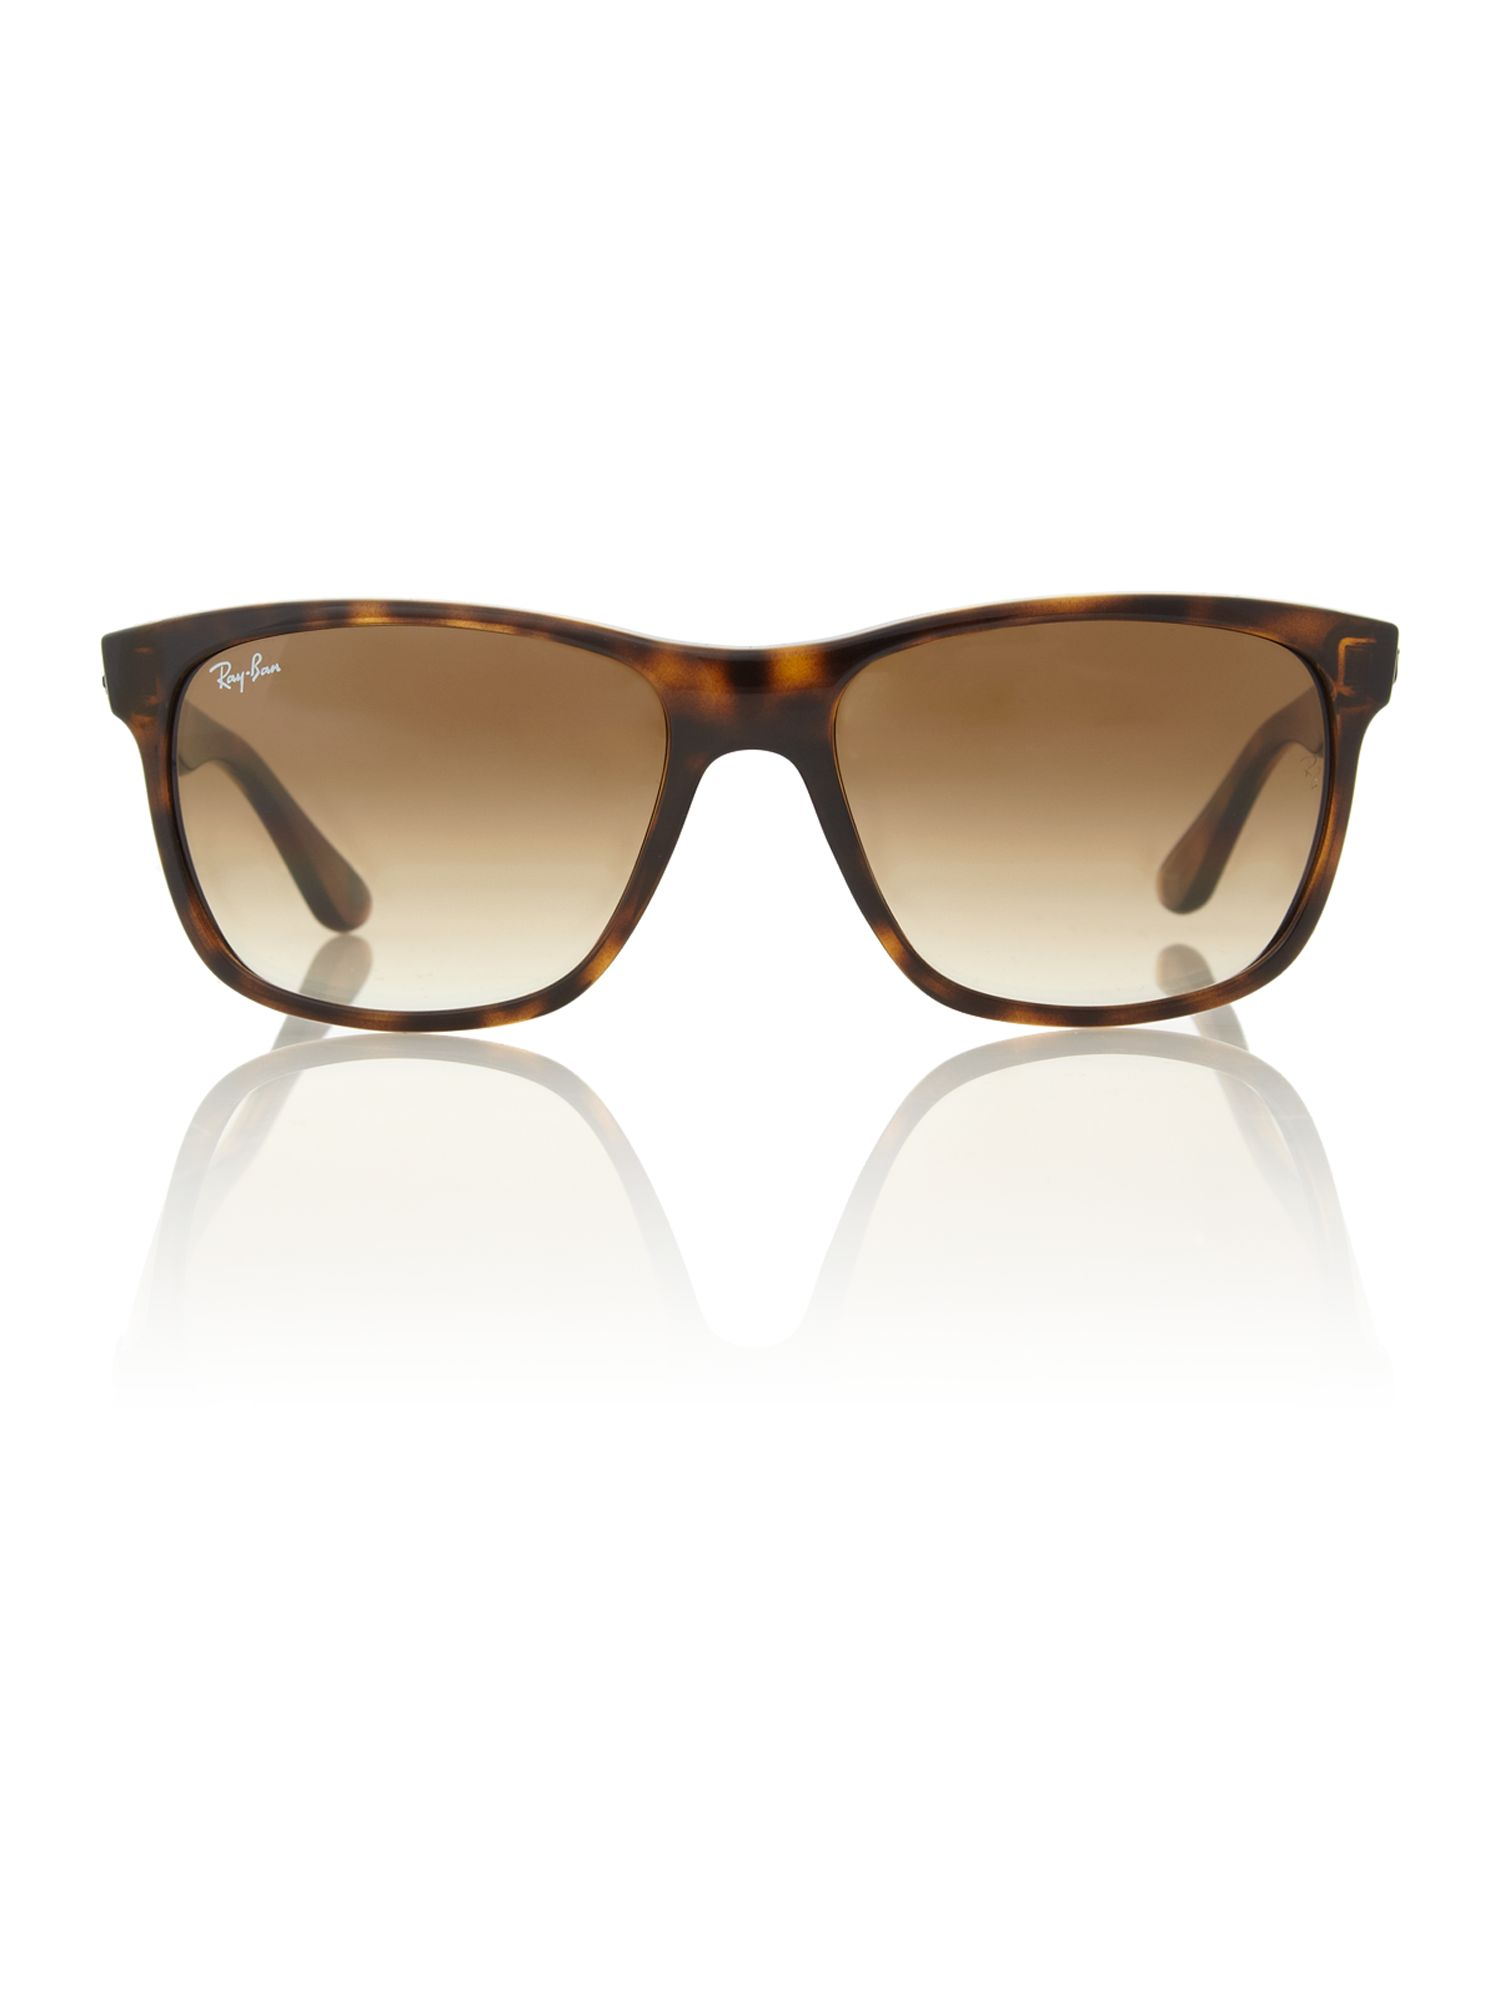 Unisex RB4181 Light Havana Square Sunglasses